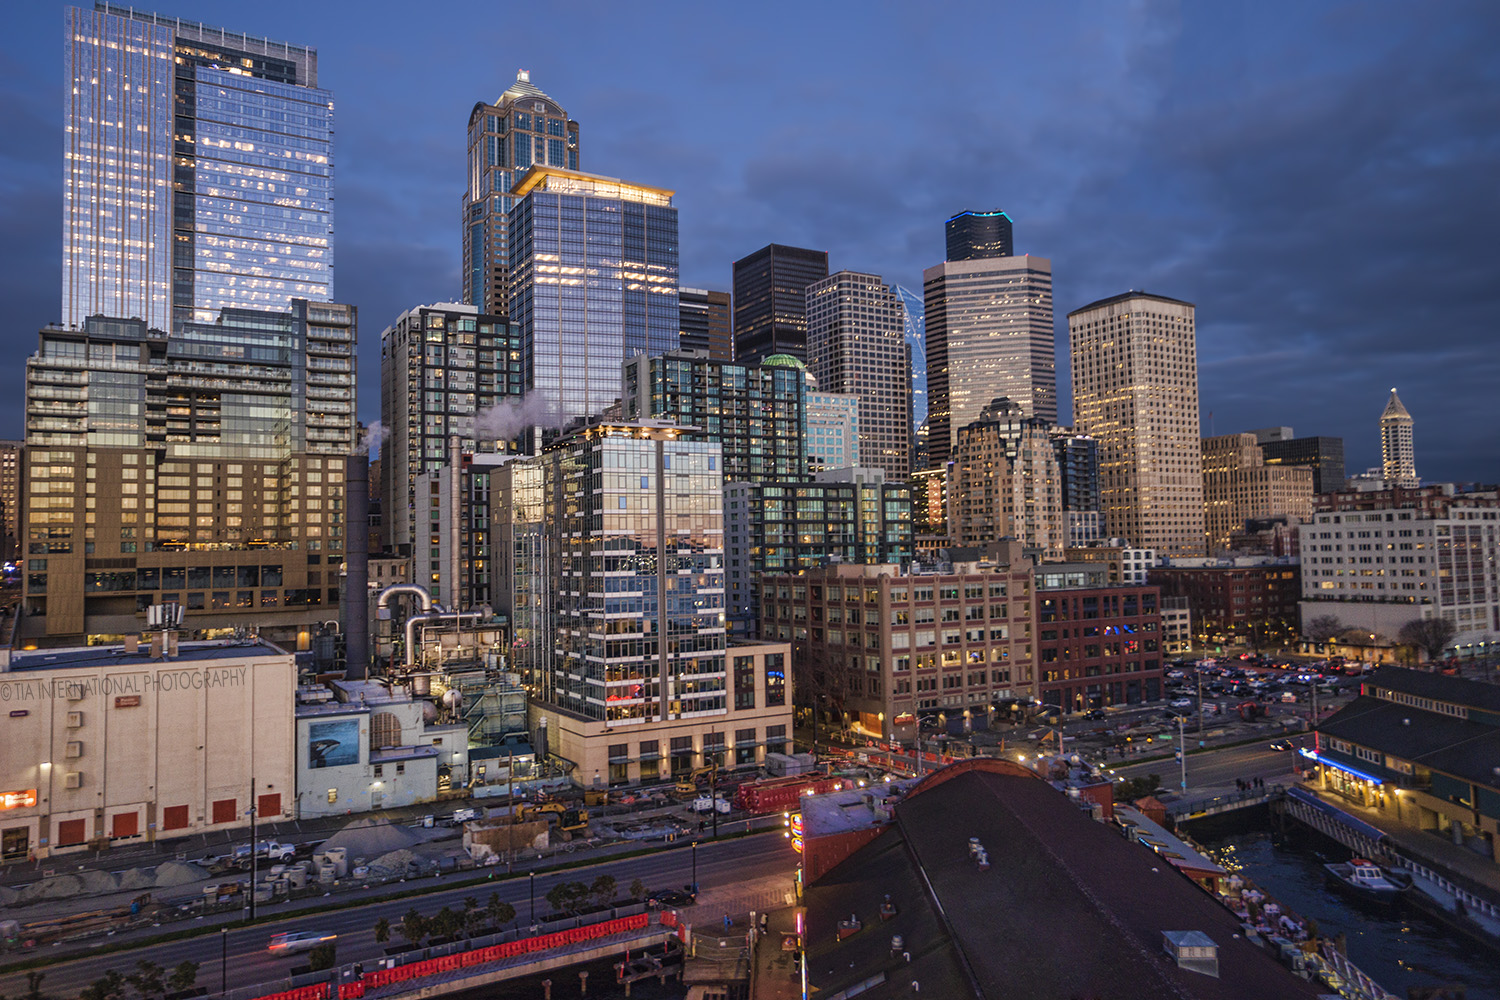 Downtown Seattle & Waterfront as seen from the Great Wheel.